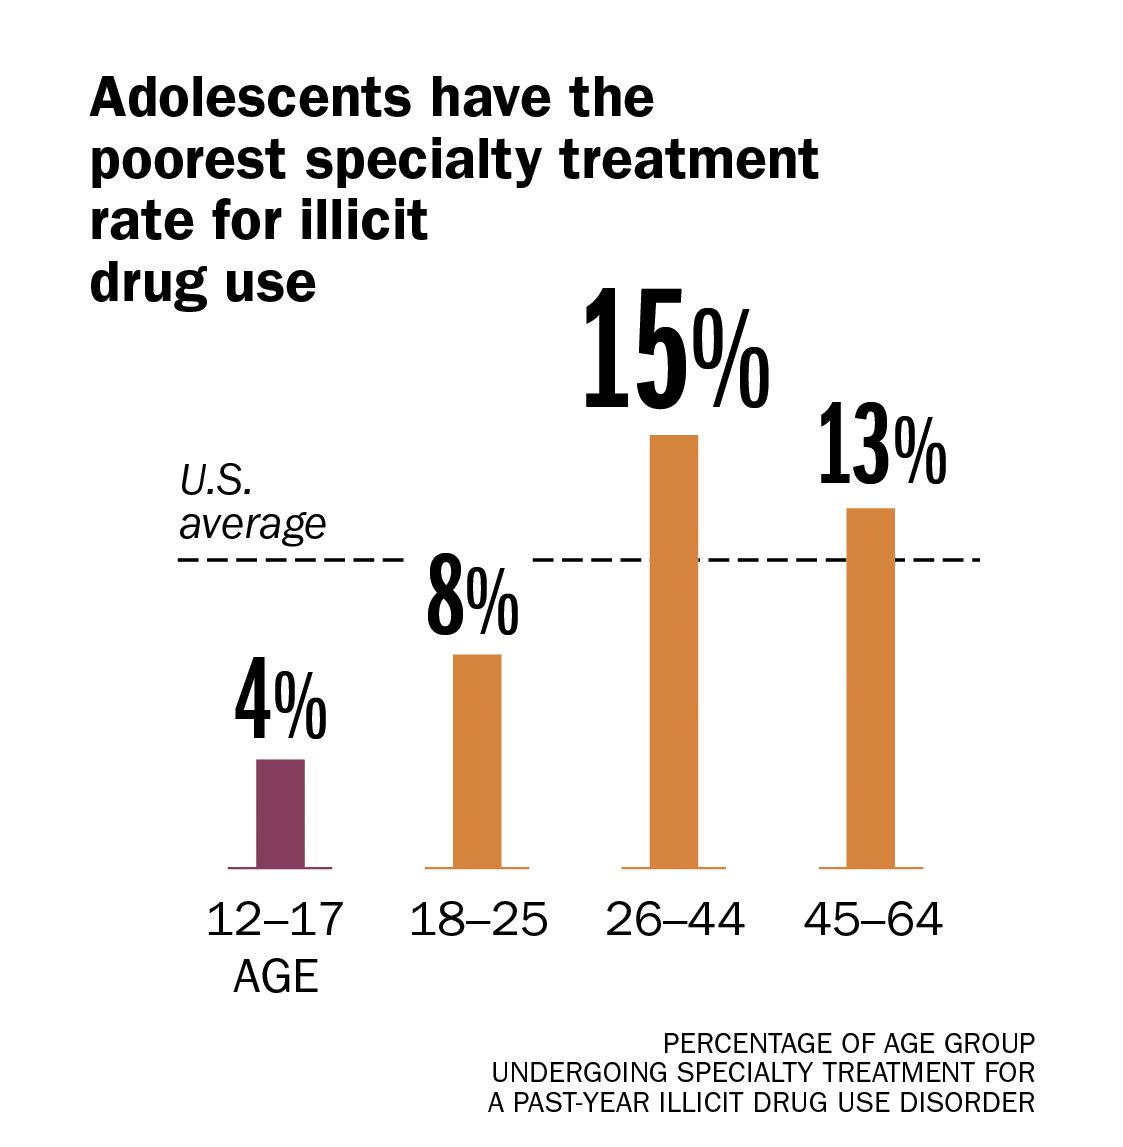 teens are getting more depressed but using fewer drugs Teens Are Getting More Depressed But Using Fewer Drugs 2 drug use treatment rates